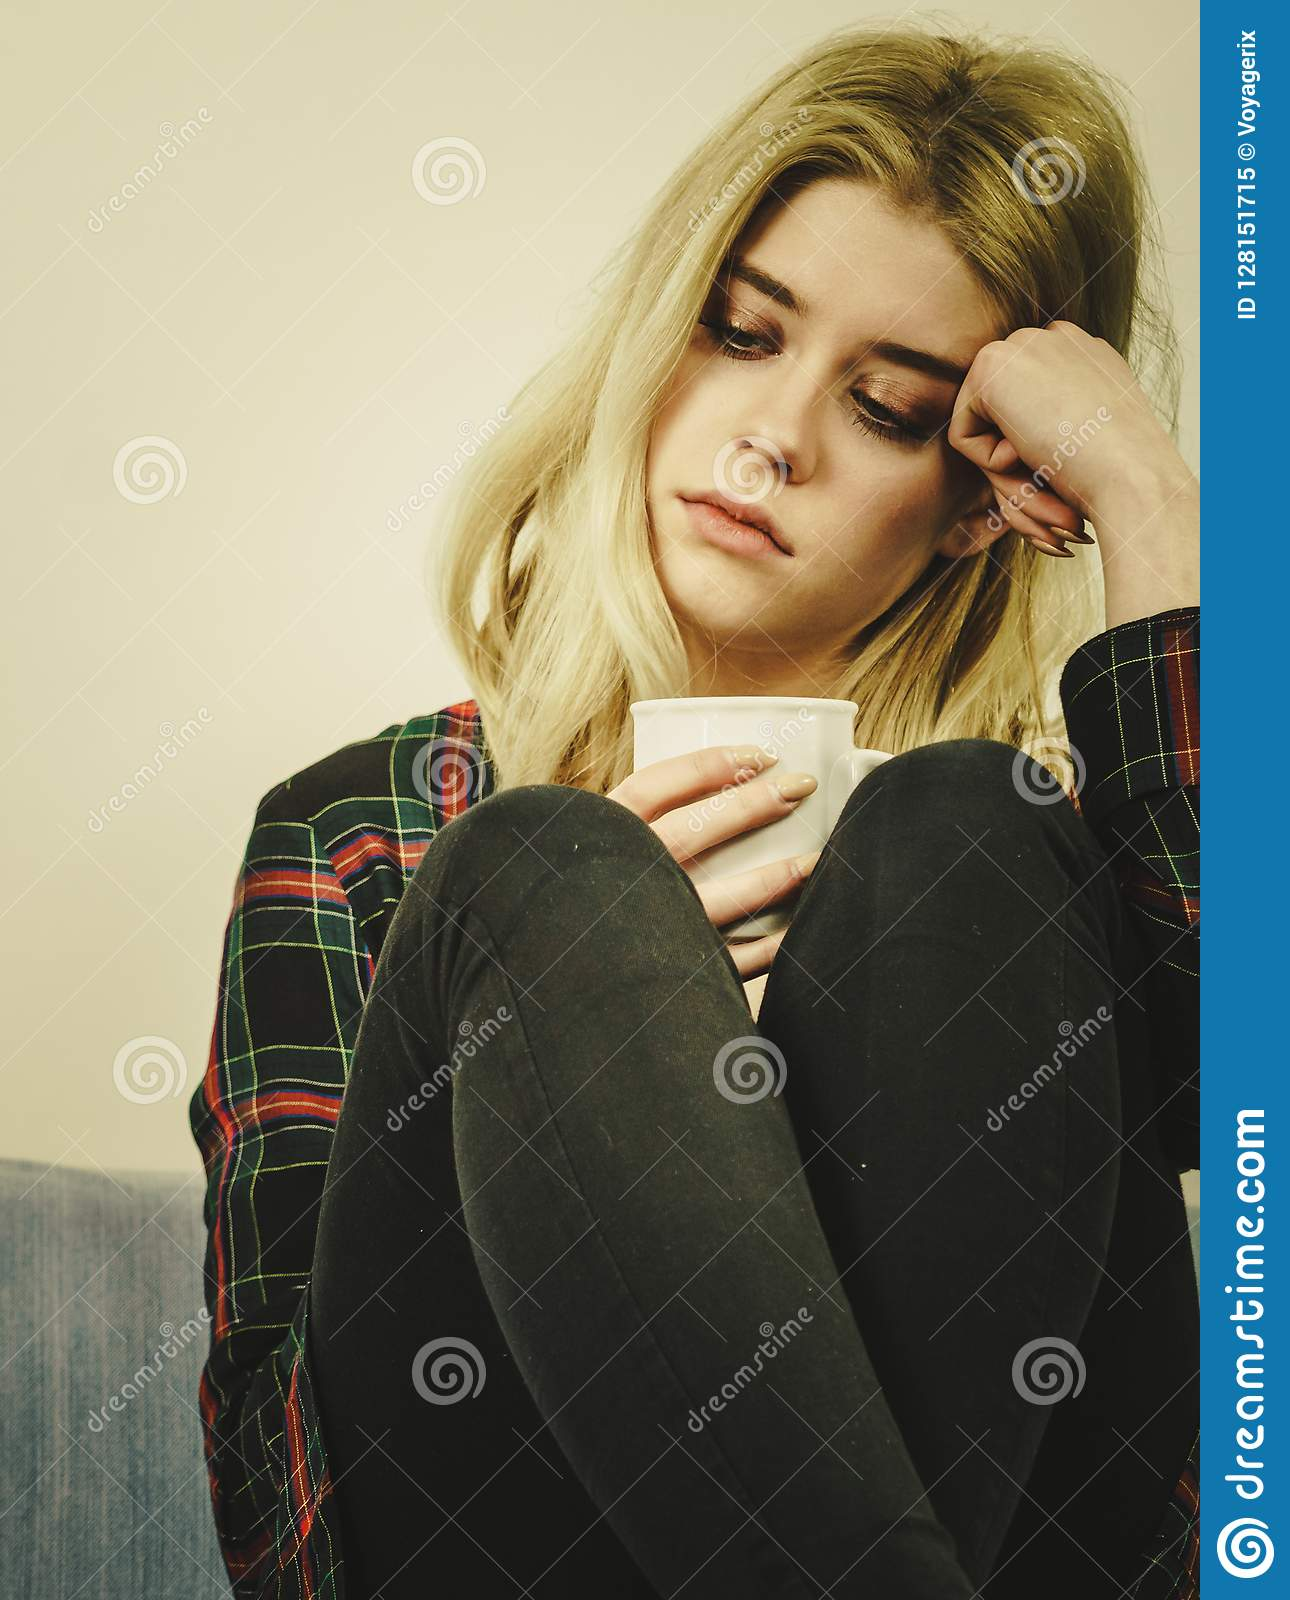 Image result for a stressedlooking women